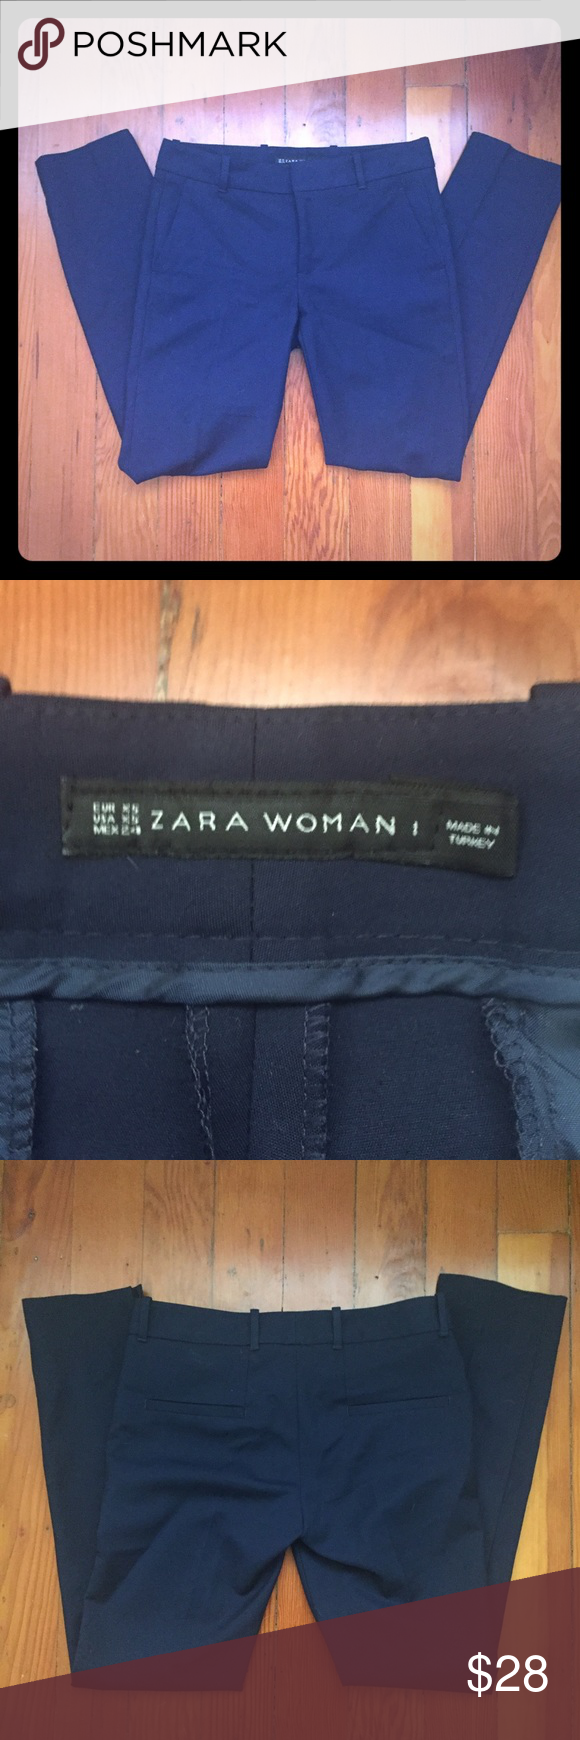 ZARA Woman slim pants Navy pants with a slim leg, simple welt back pockets, and diagonal front pockets that help to slim the frame. Classic versatile fit and style. Worn once. On Ⓜ️ercari for less.  Search for my name tikkapatel. Zara Pants Skinny